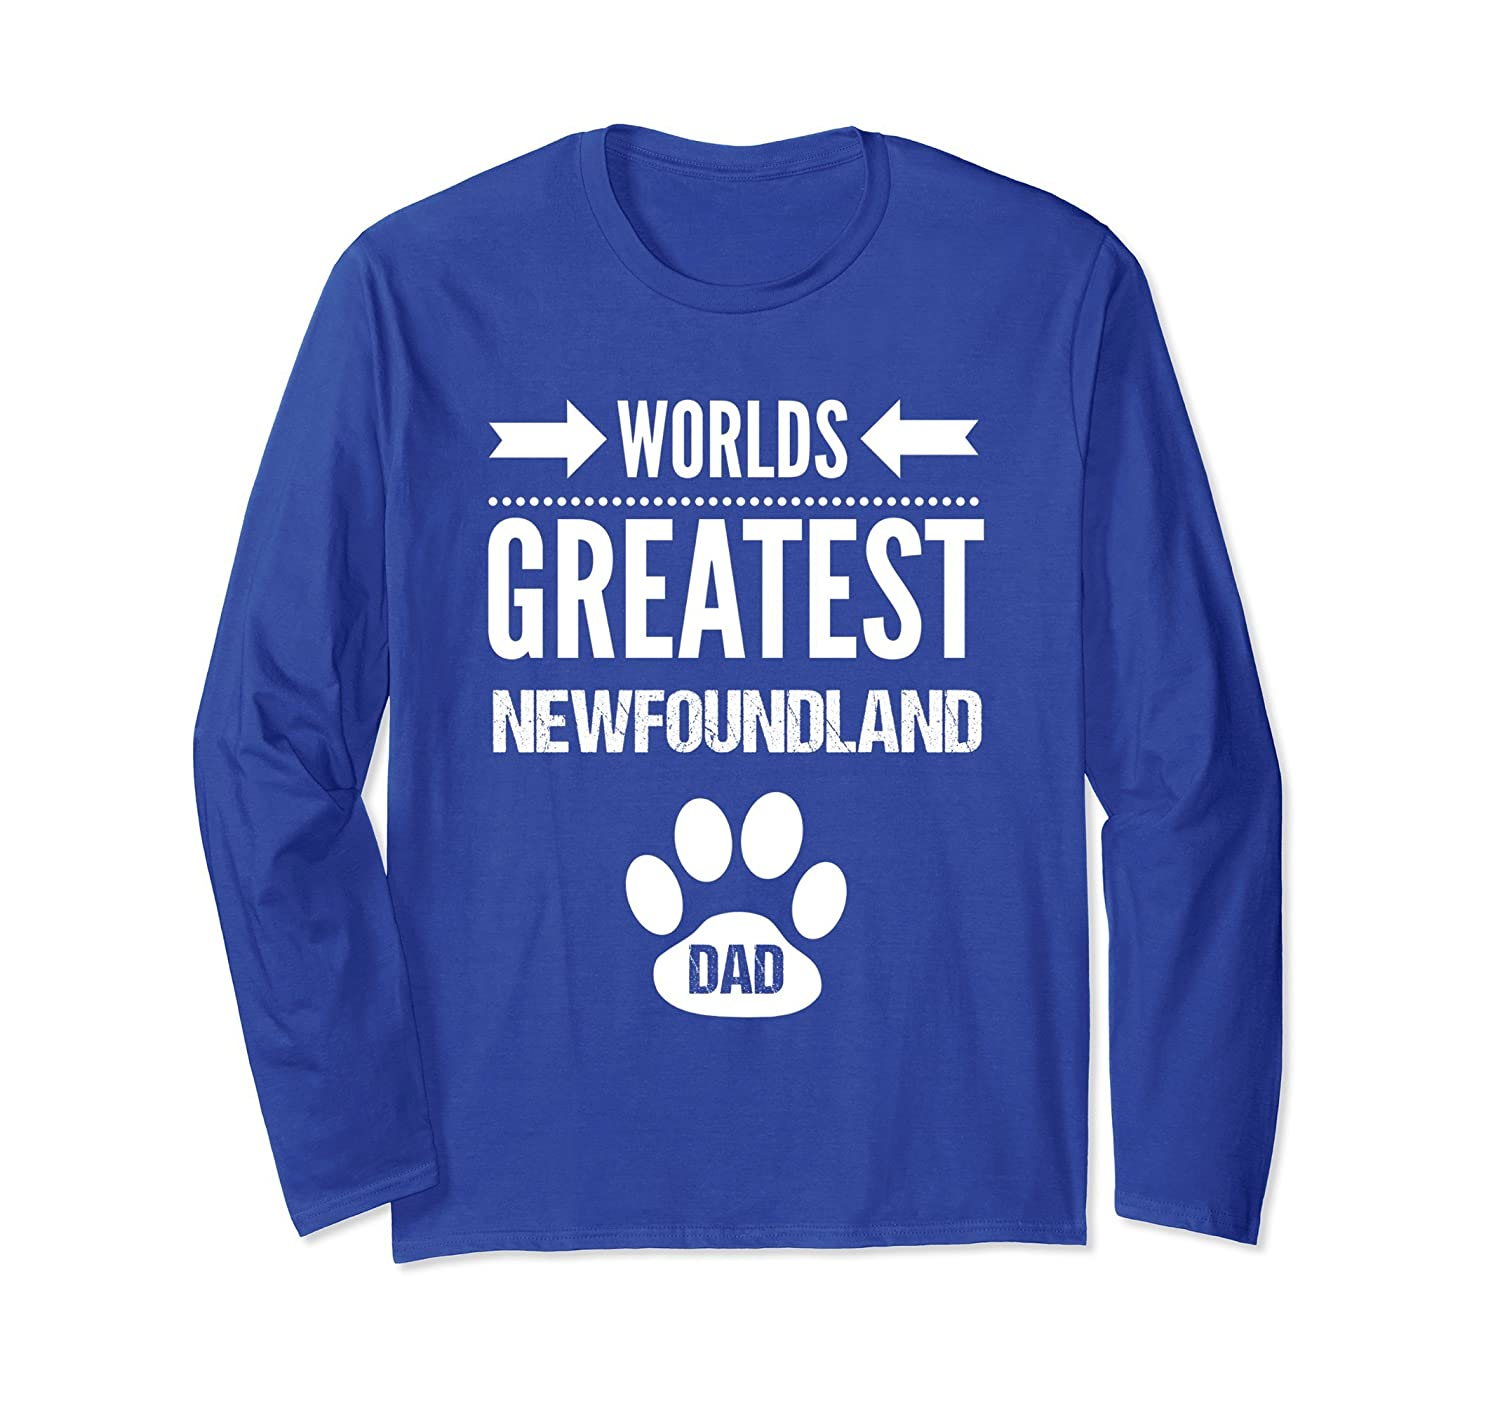 Worlds Greatest Newfoundland Dog Dad Long Sleeve Tee Shirt-TH